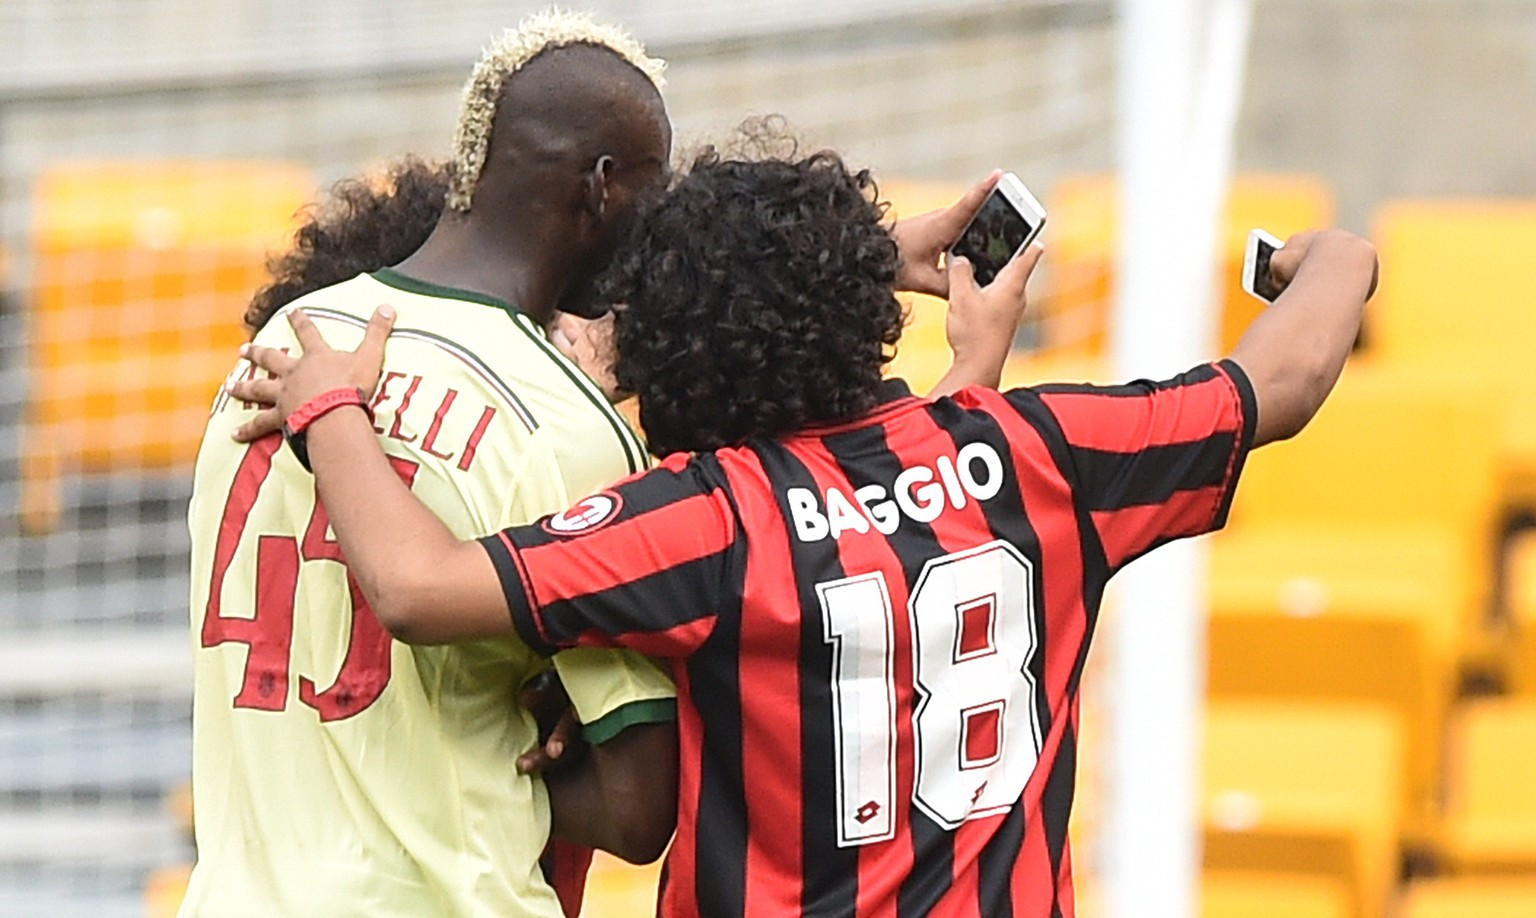 Two fans take selfies with AC Milan's Mario Balotelli after running on the pitch during a Champions Cup match against Manchester City at Heinz Field in Pittsburgh on July 27, 2014. Manchester City won 5-1.   AFP PHOTO/Nicholas KAMM